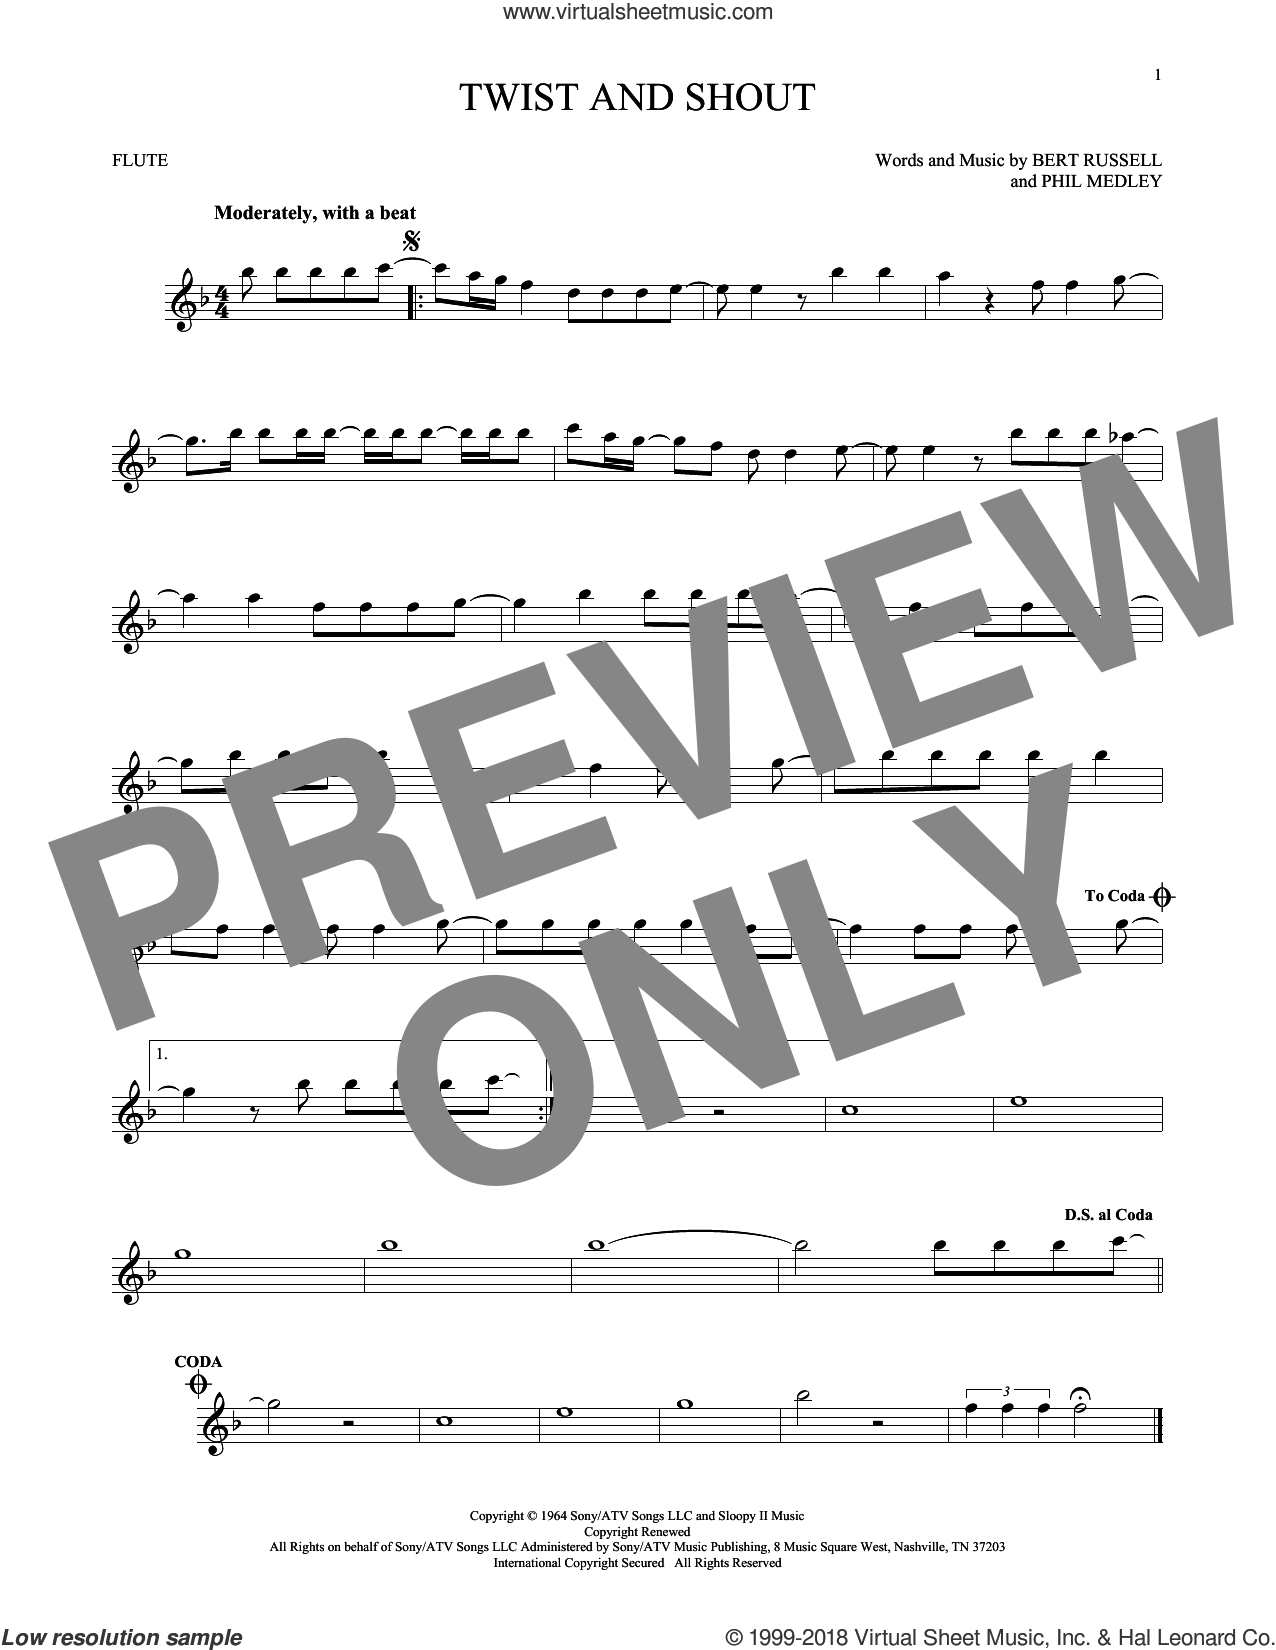 Twist And Shout sheet music for flute solo by The Beatles, The Isley Brothers, Bert Russell and Phil Medley, intermediate